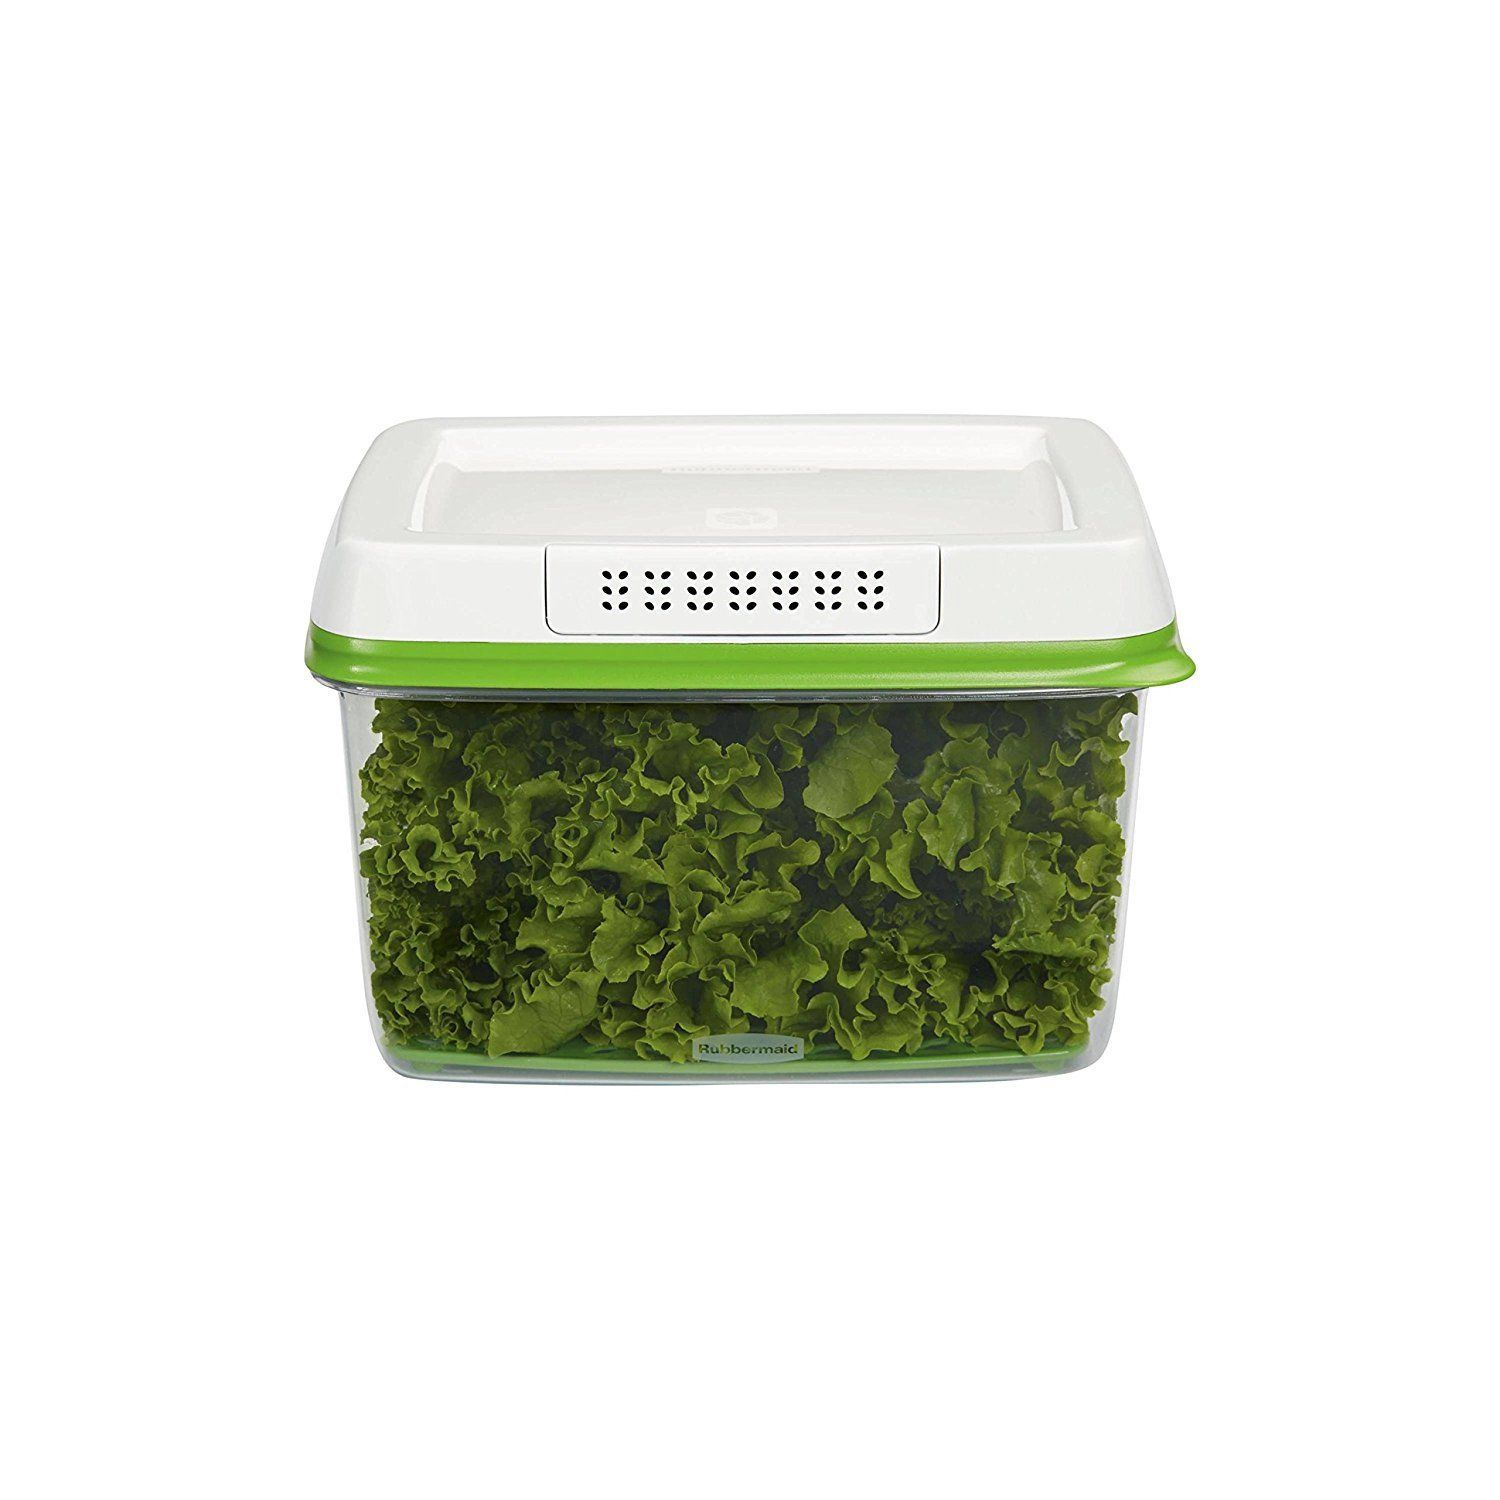 Rubbermaid FreshWorks Produce Saver Food Storage Container, Large, 17.3 Cup, Gre 1